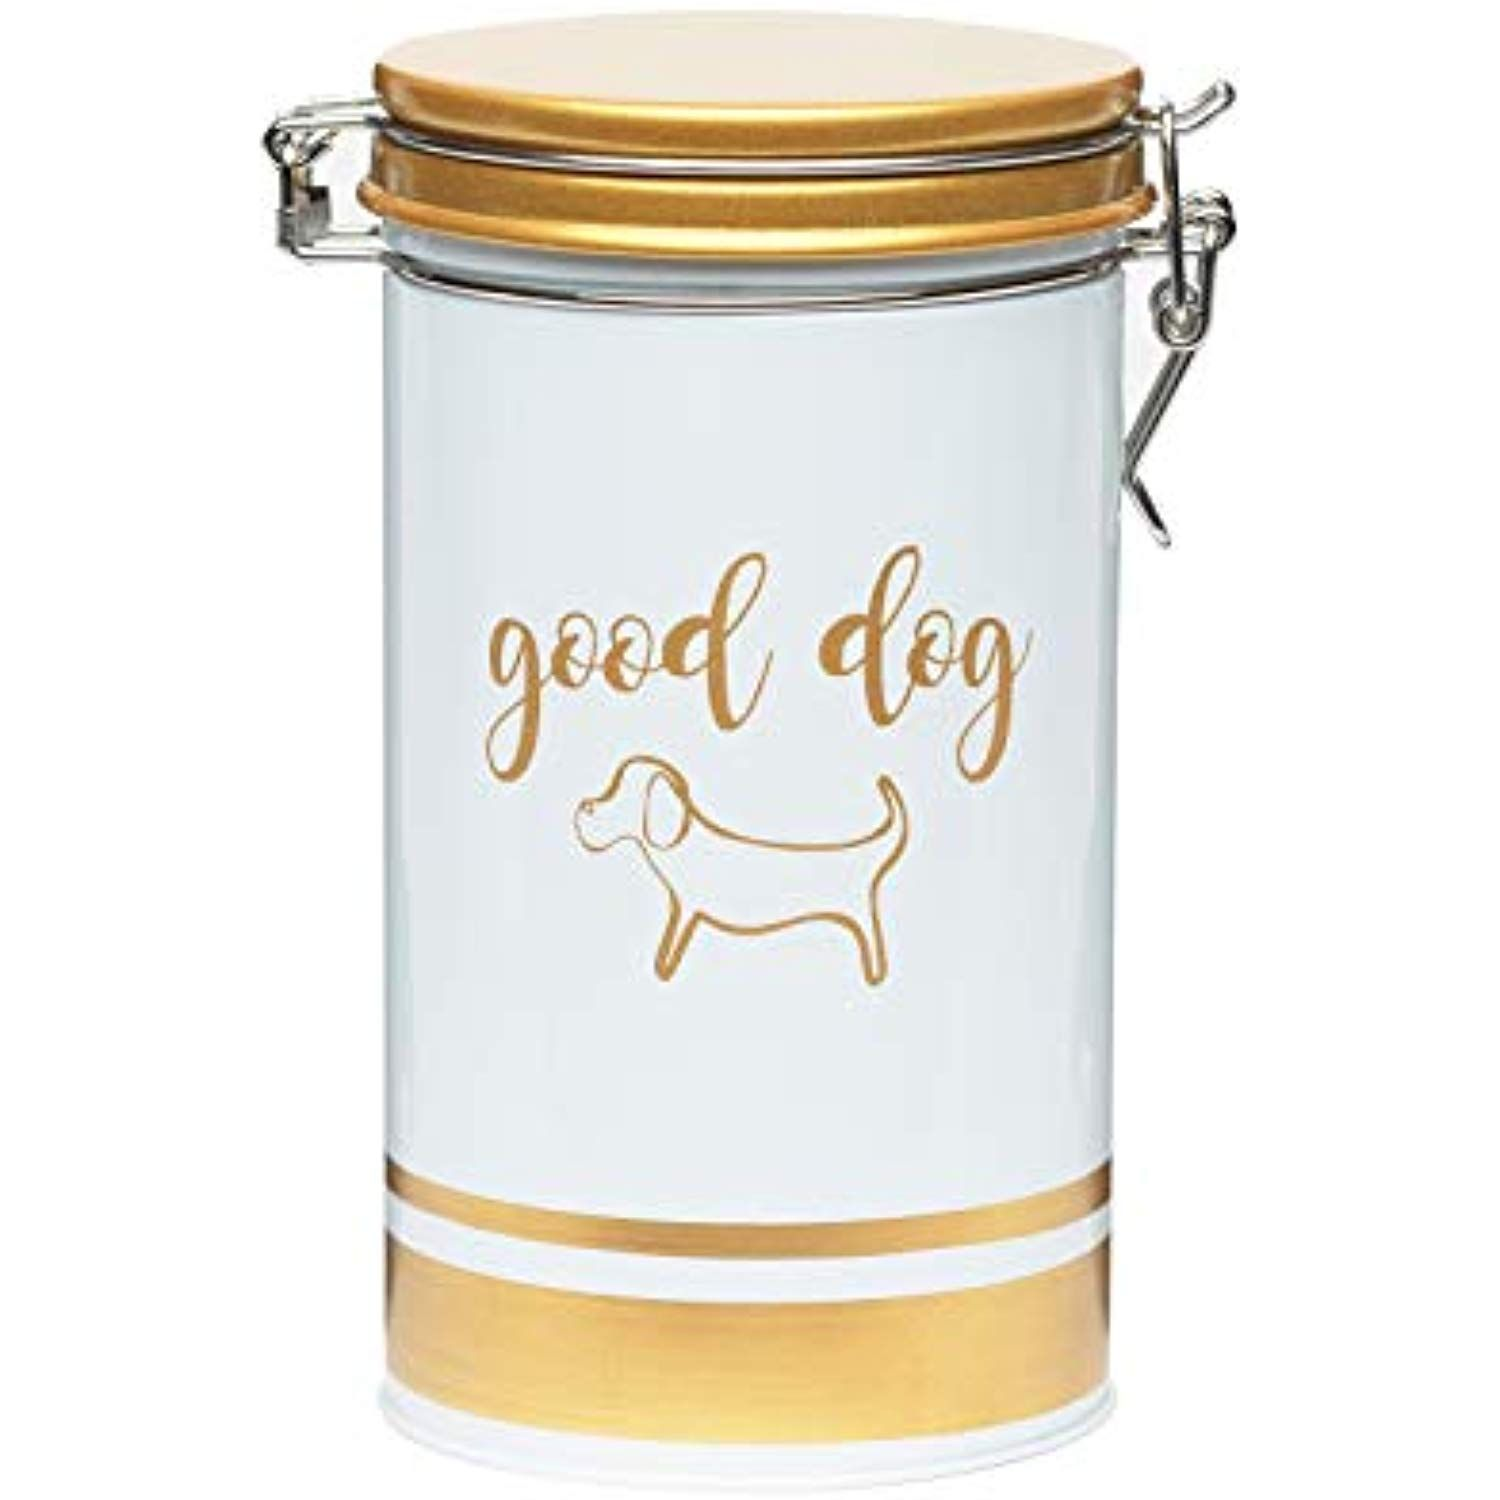 Amici pet furbaby dog canister decorative painted metal